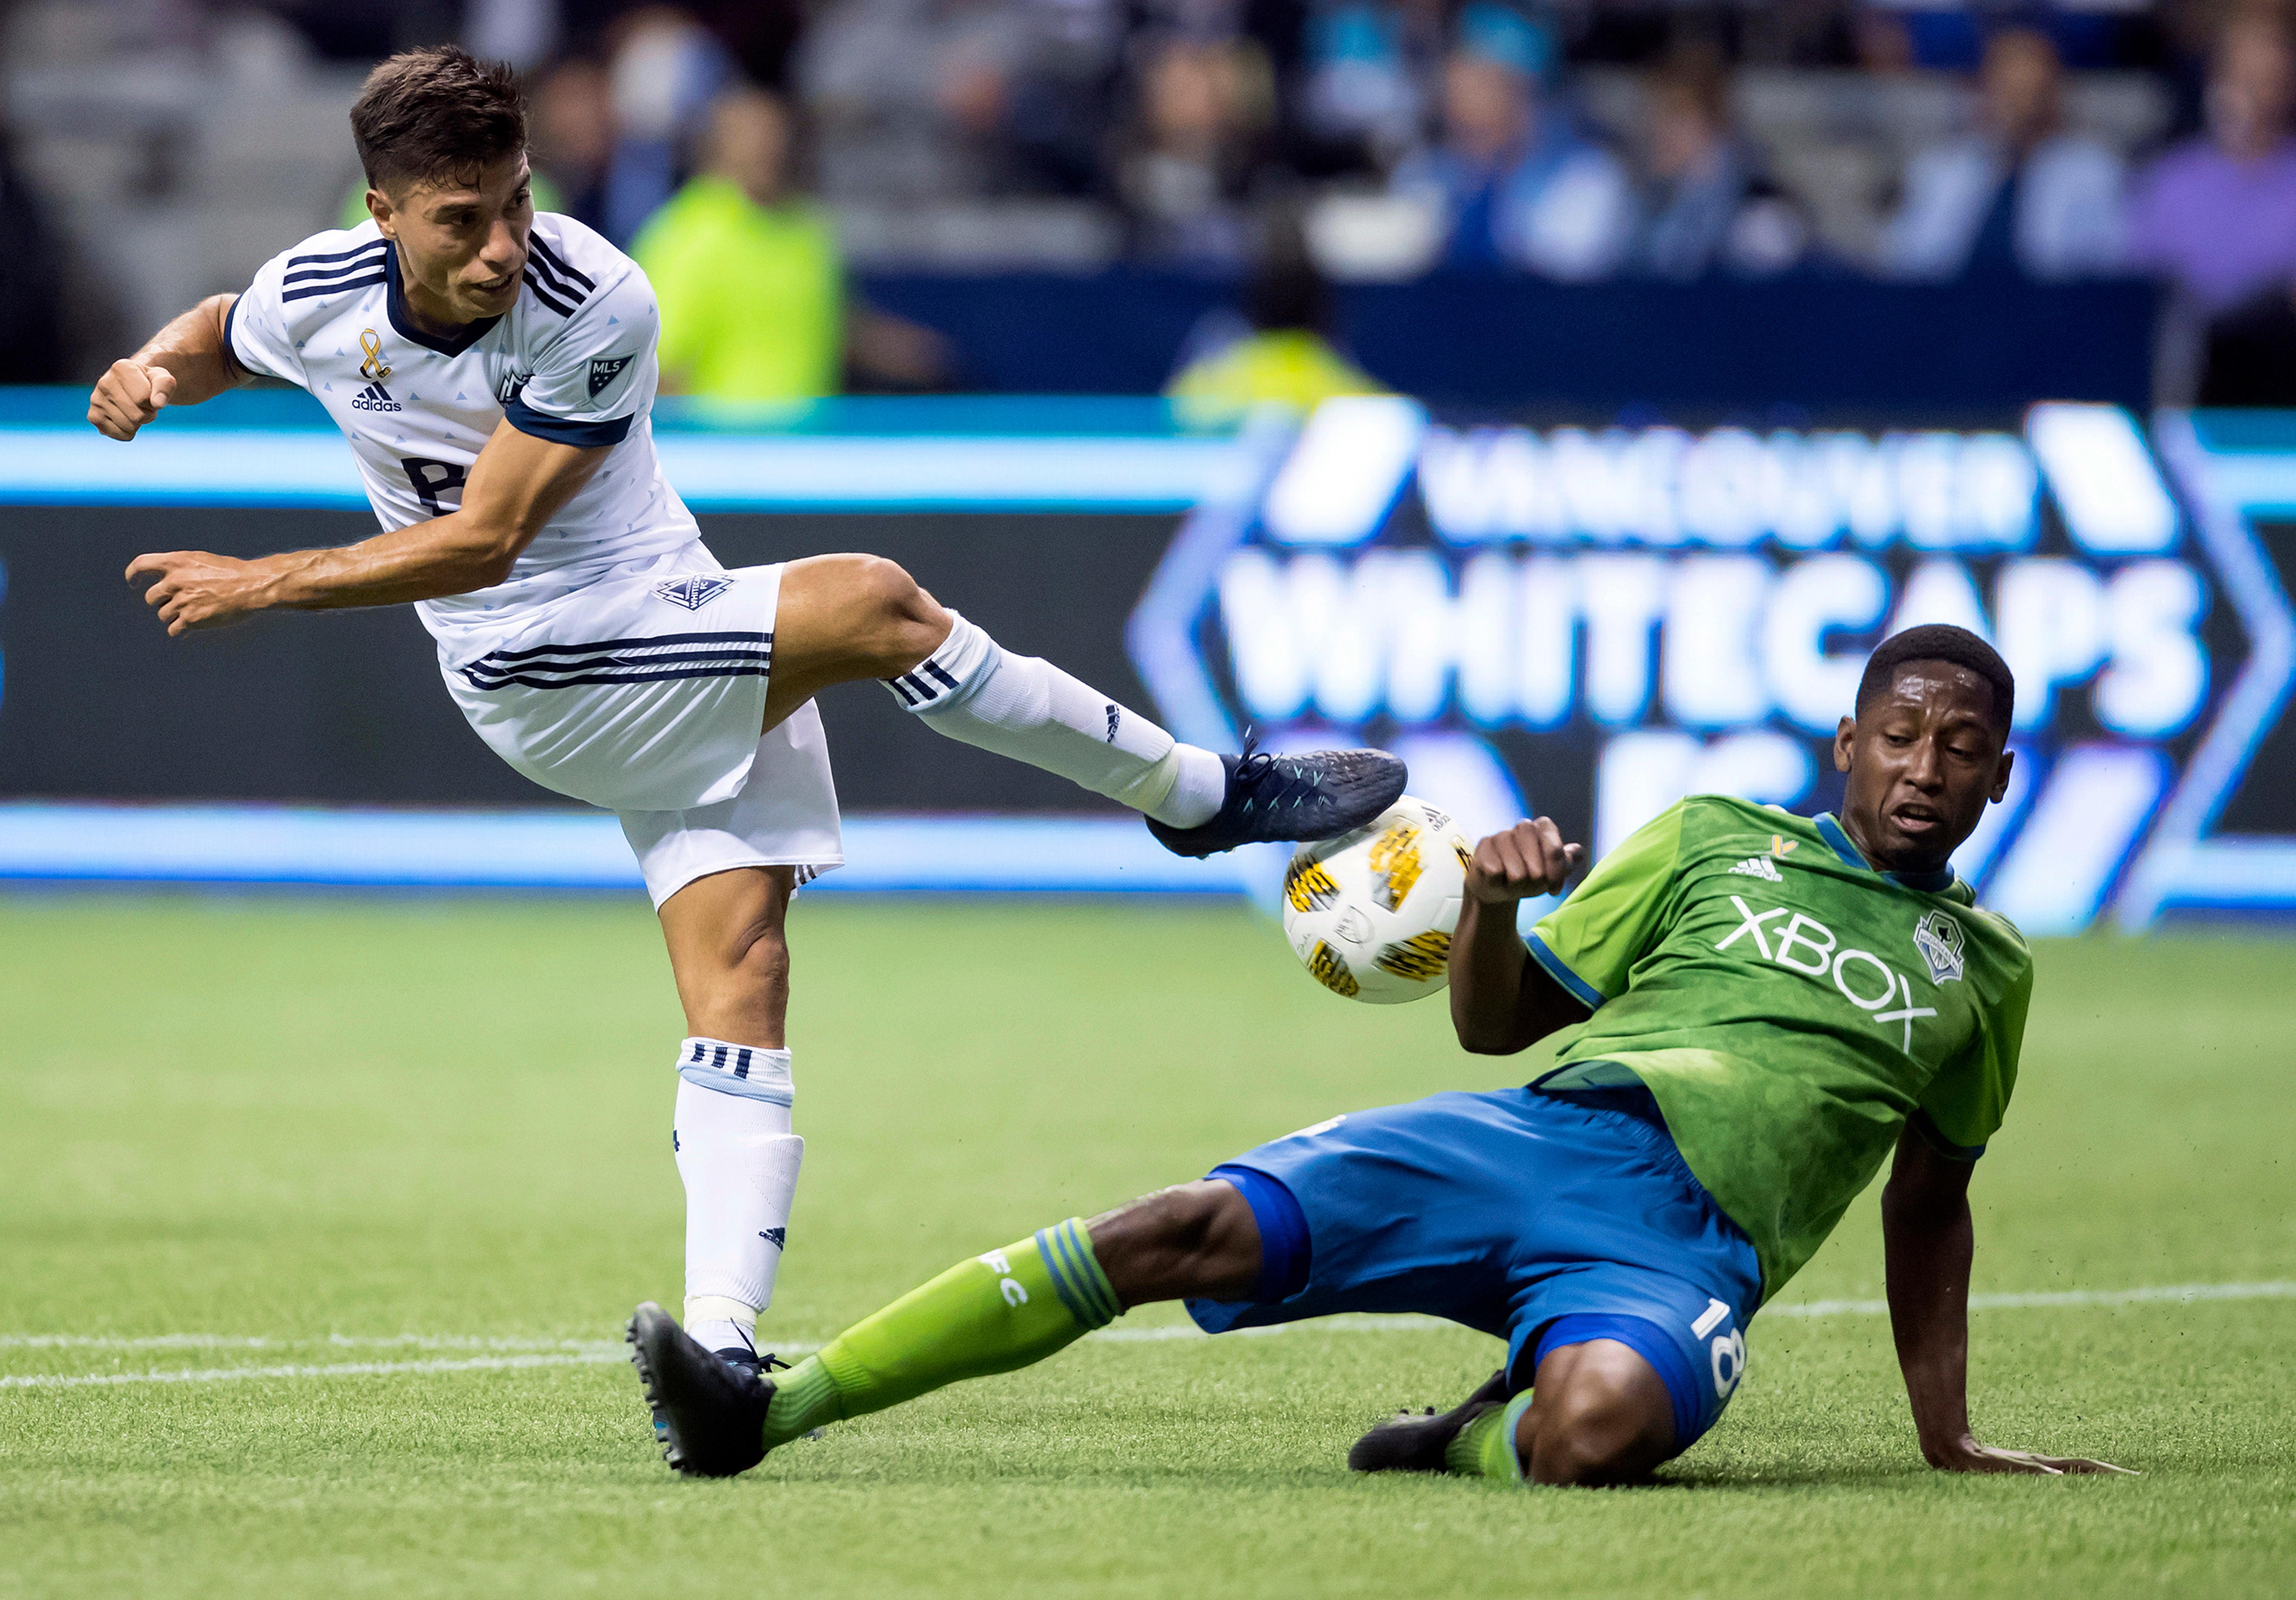 Vancouver Whitecaps' Nicolas Mezquida, left, has his shot blocked by Seattle Sounders' Kelvin Leerdam during the first half of an MLS soccer match, Saturday, Sept. 15, 2018, in Vancouver, British Columbia. (Darryl Dyck/The Canadian Press via AP)